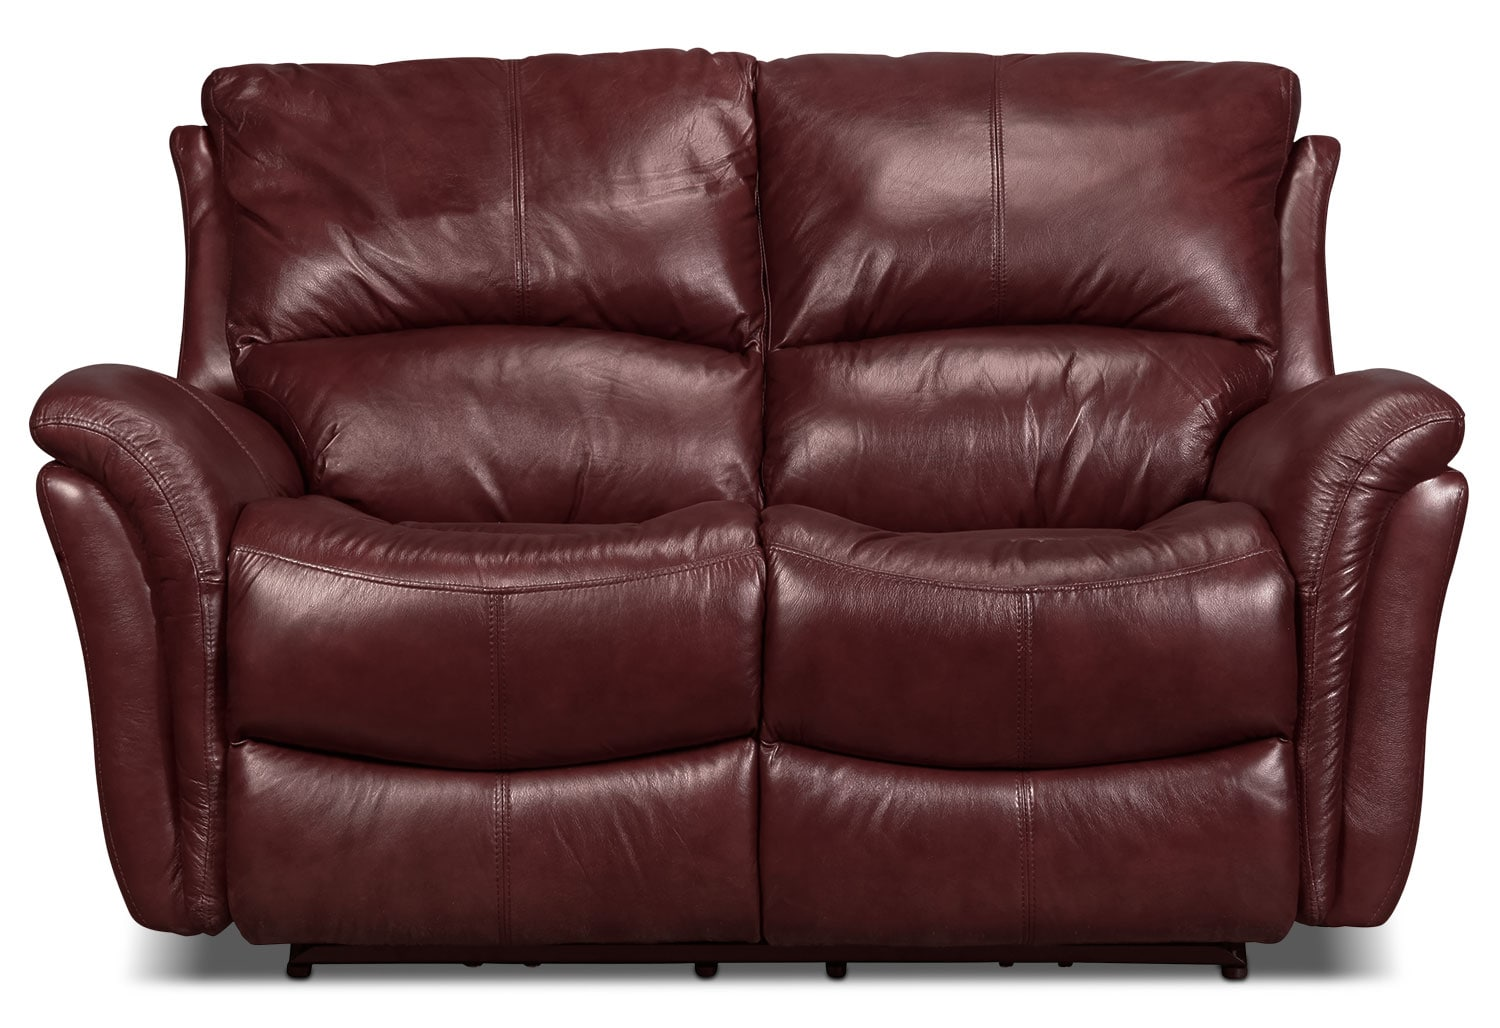 Griffin Power Reclining Loveseat Red Levin Furniture